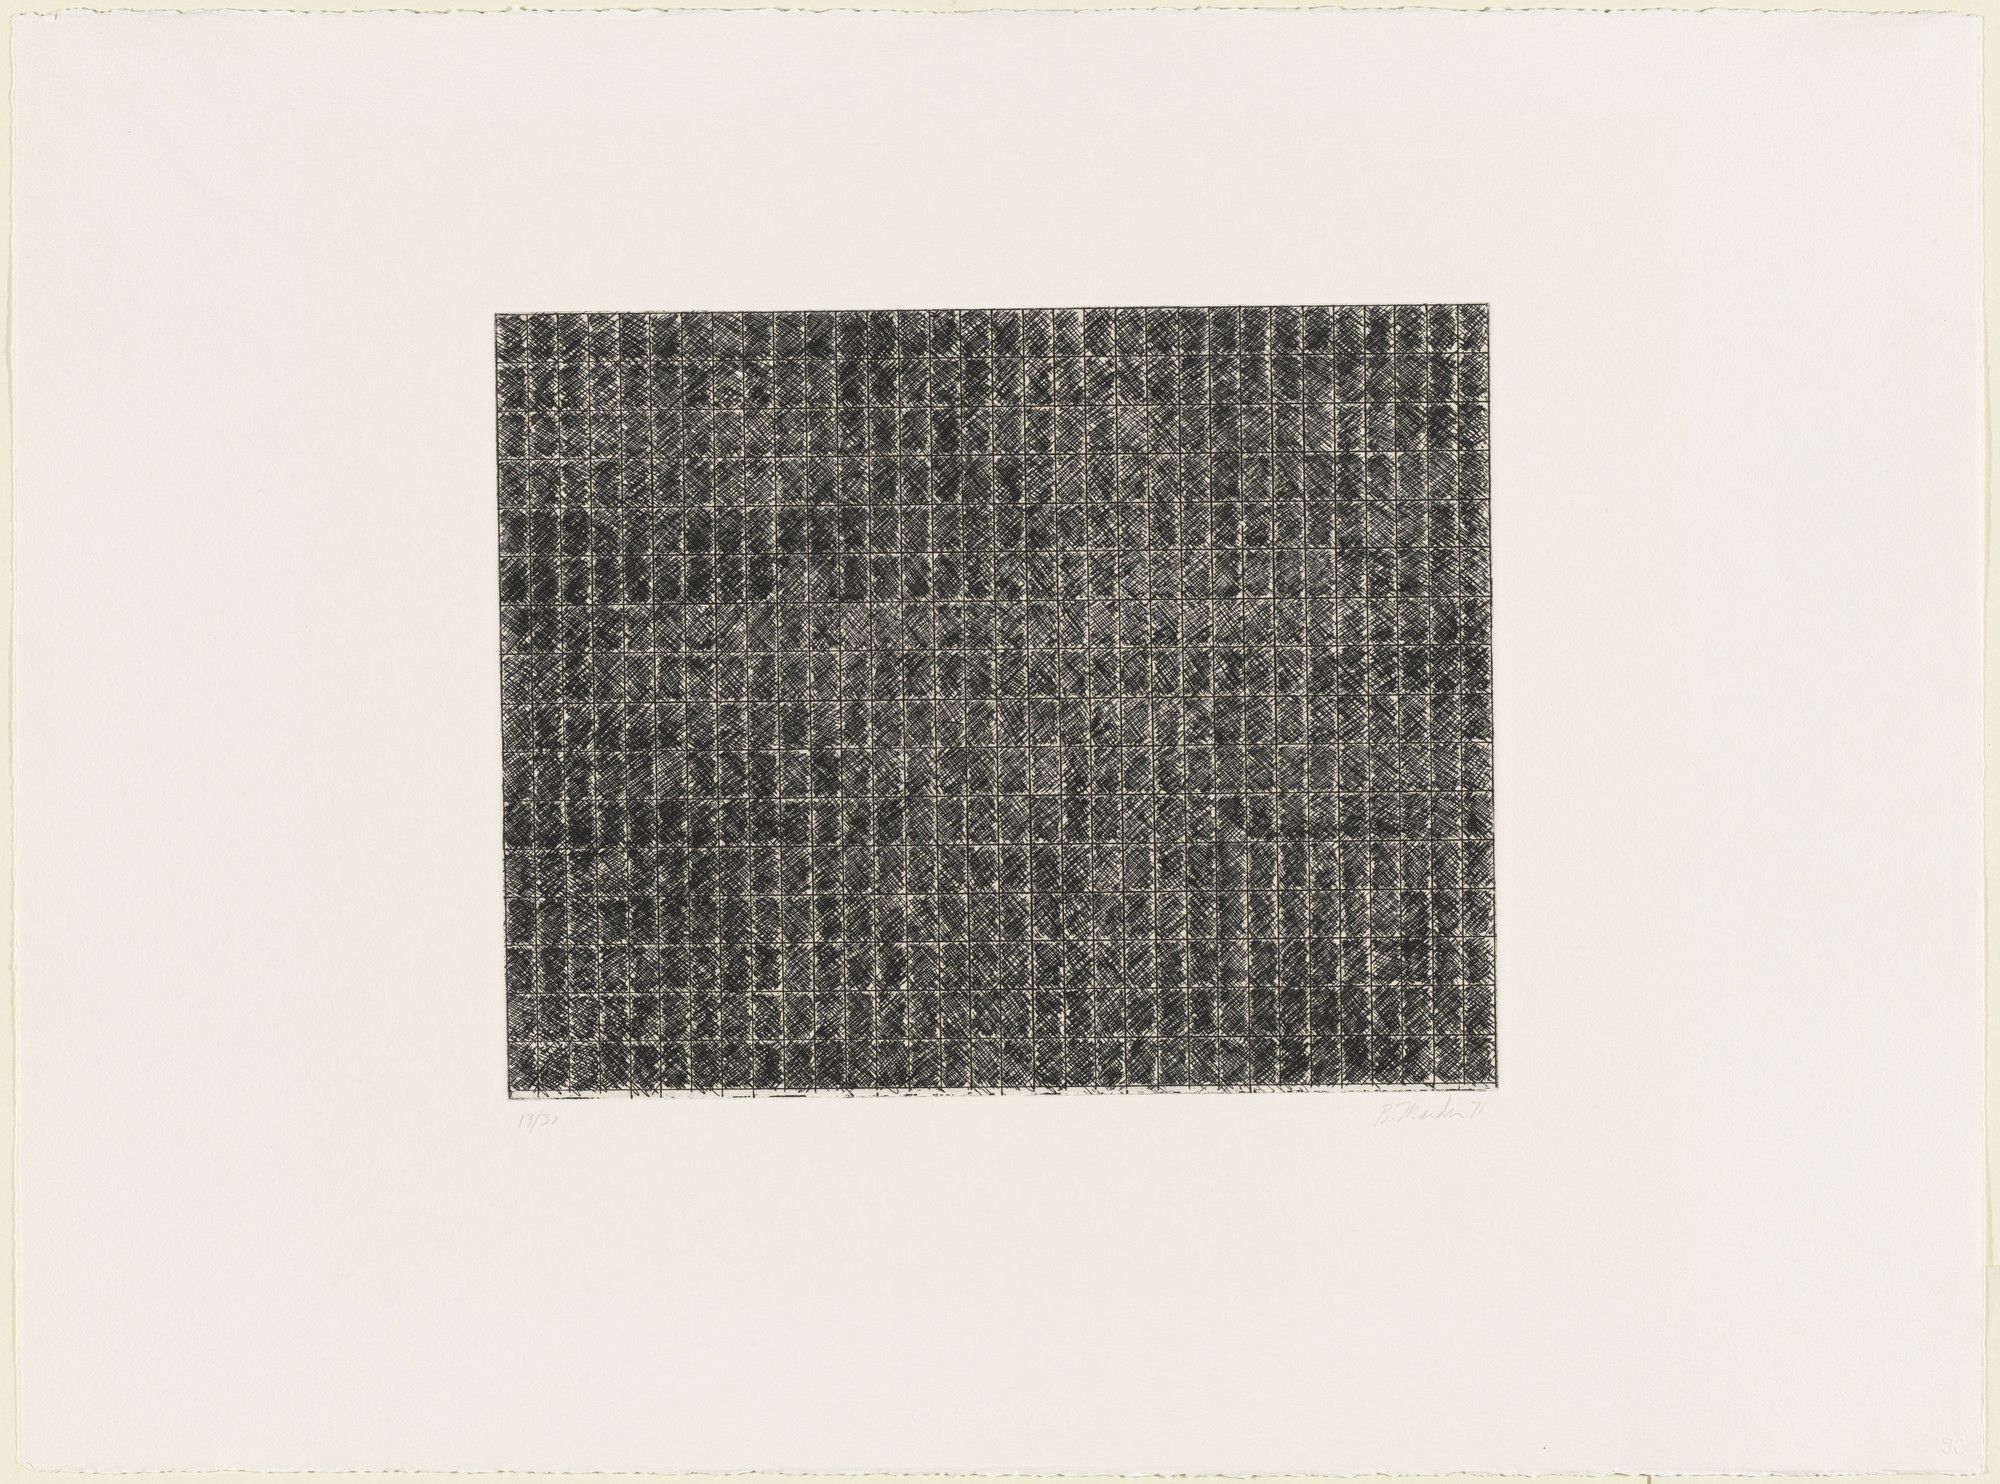 Brice Marden. Untitled from Ten Days. 1971, published 1972